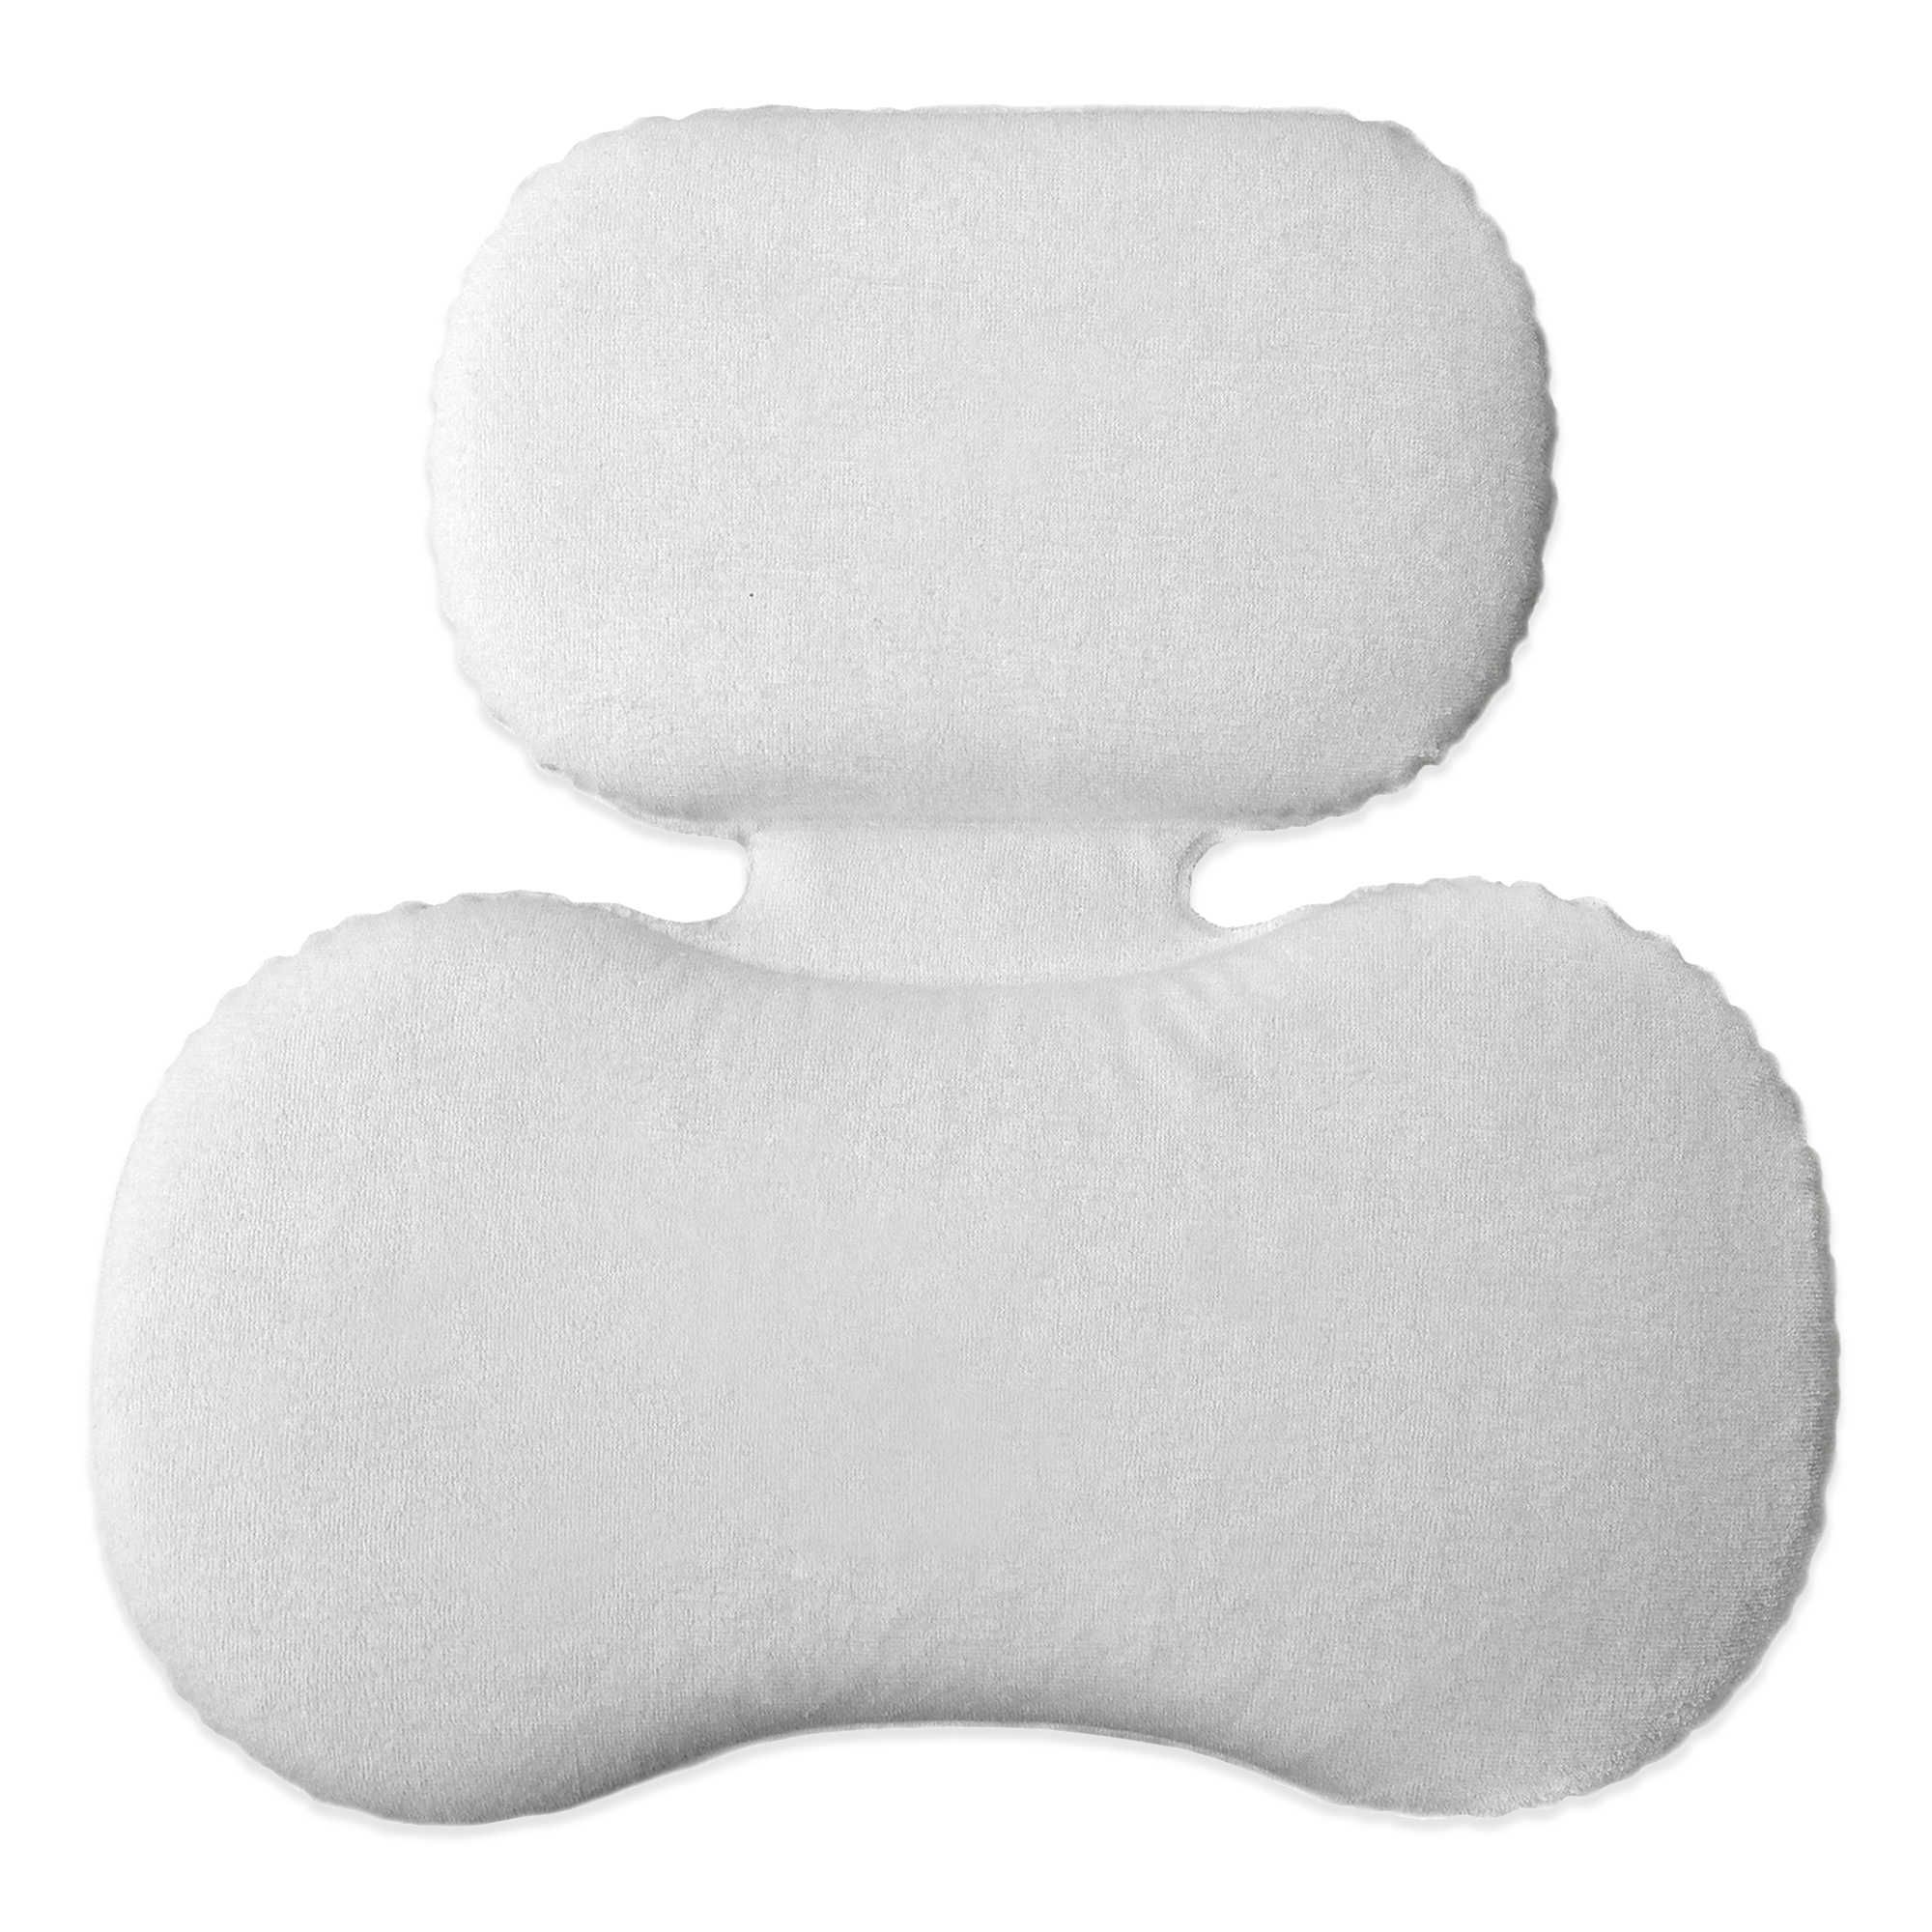 $19.99 | Buy 2 Chamber Spa Bath Pillow from Bed Bath & Beyond | X ...